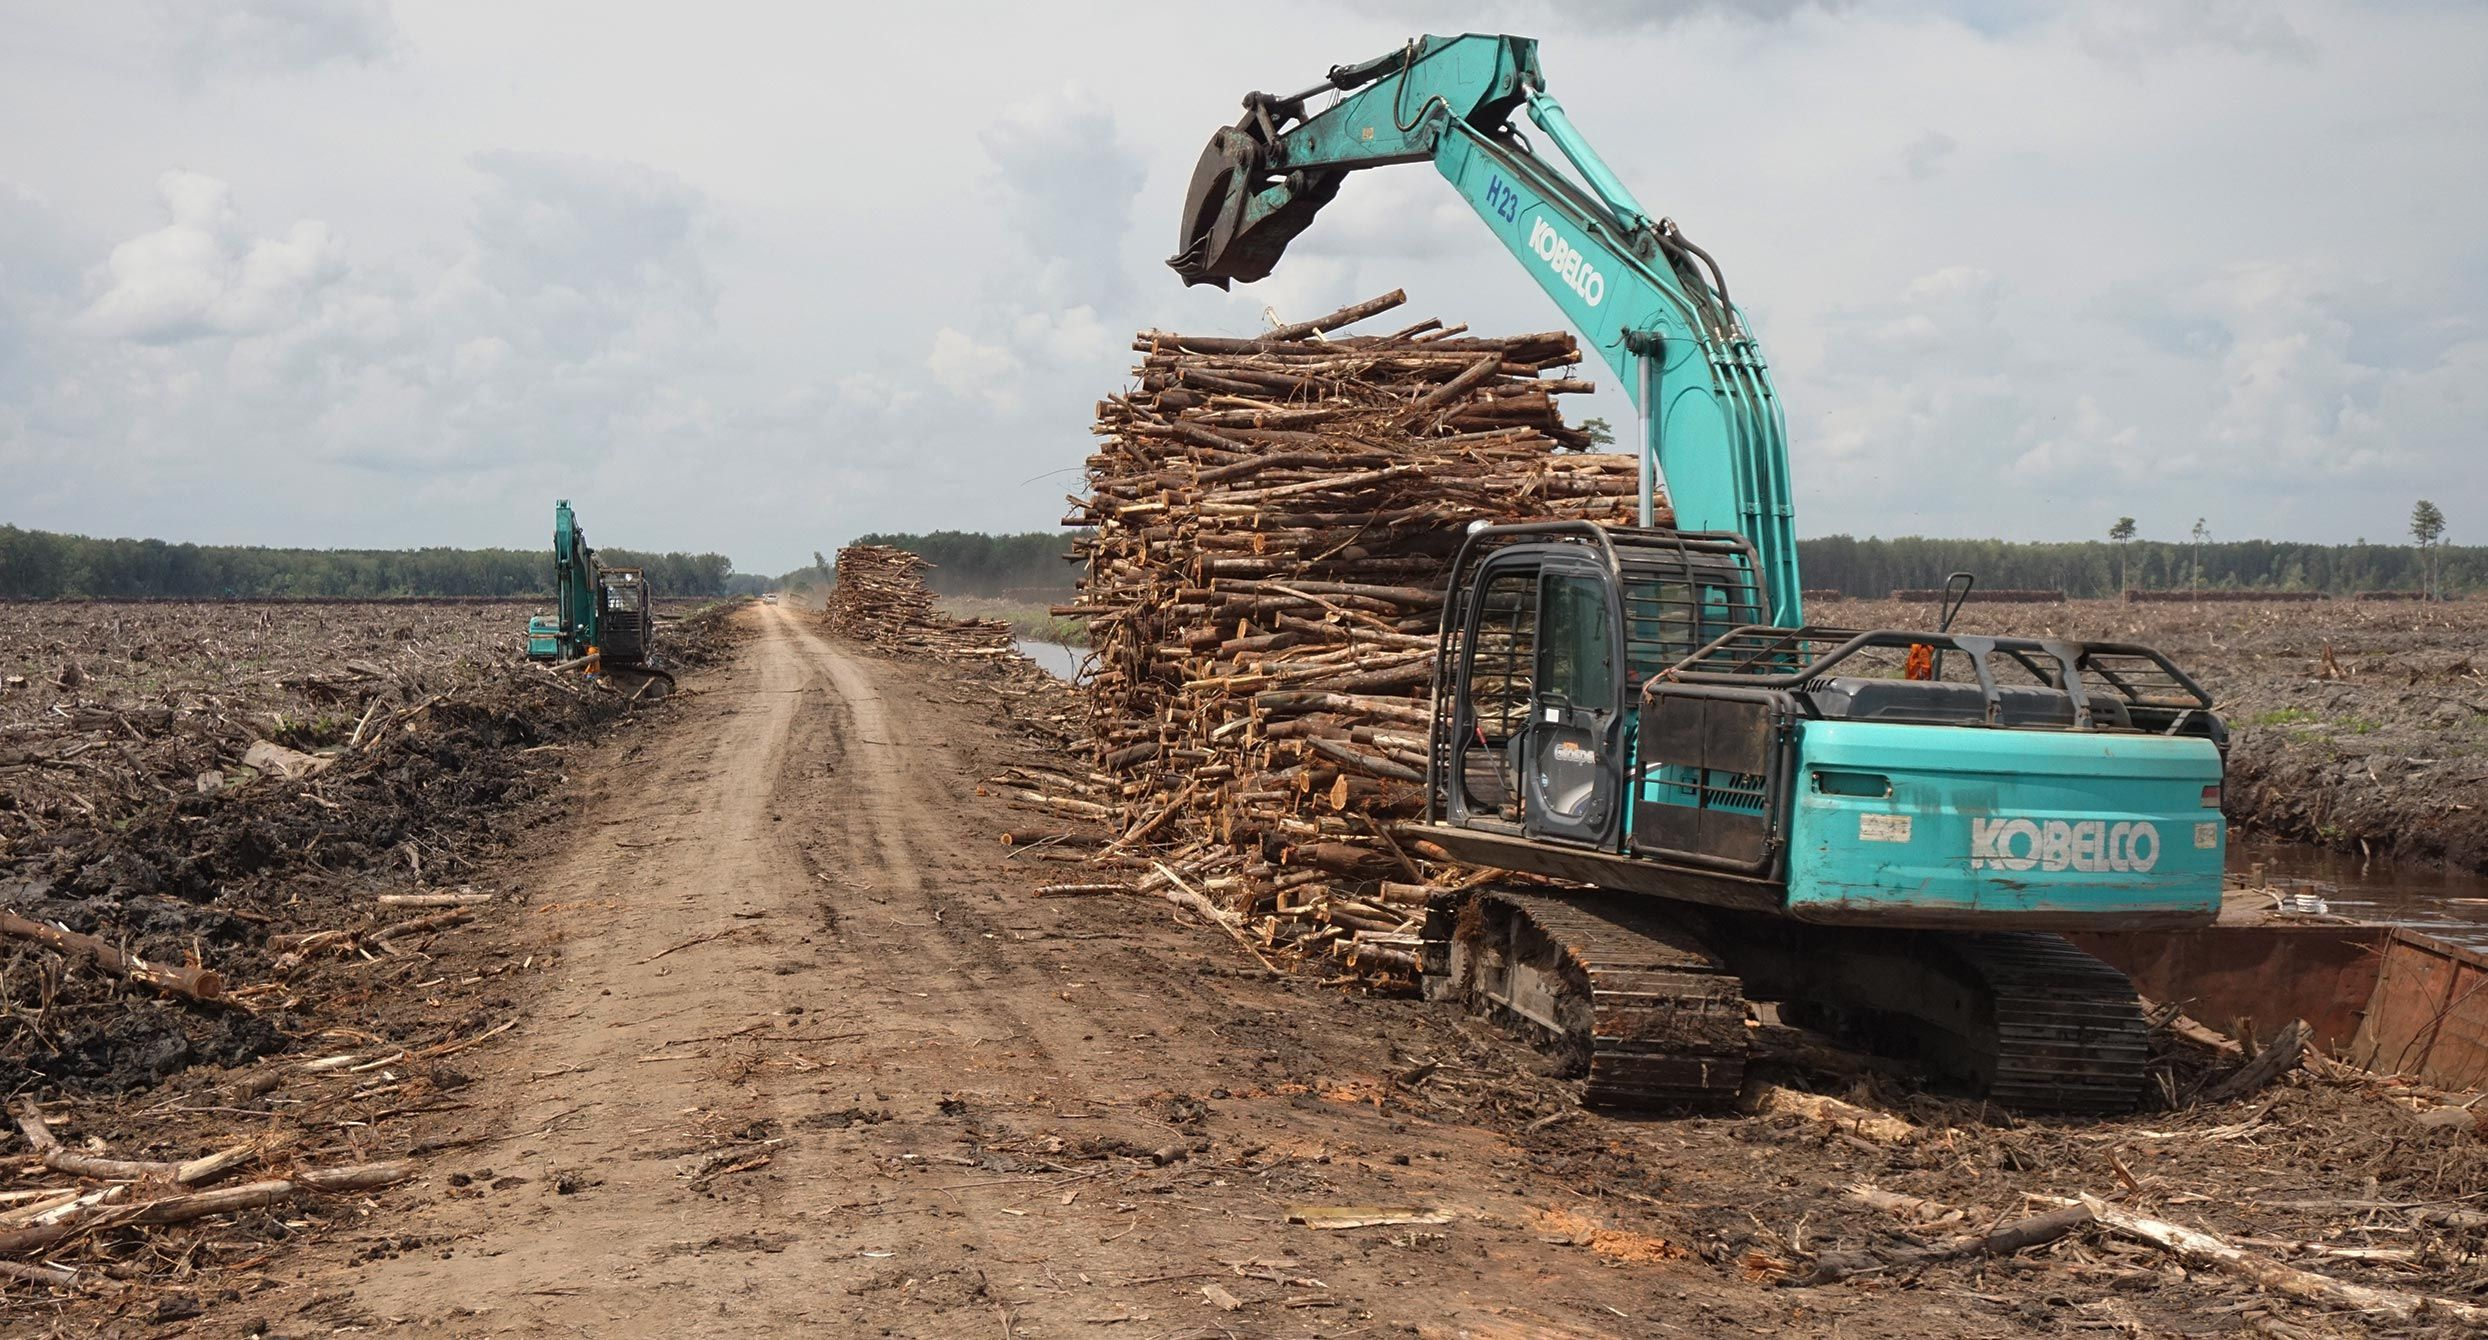 Deforestation in West Kalimantan